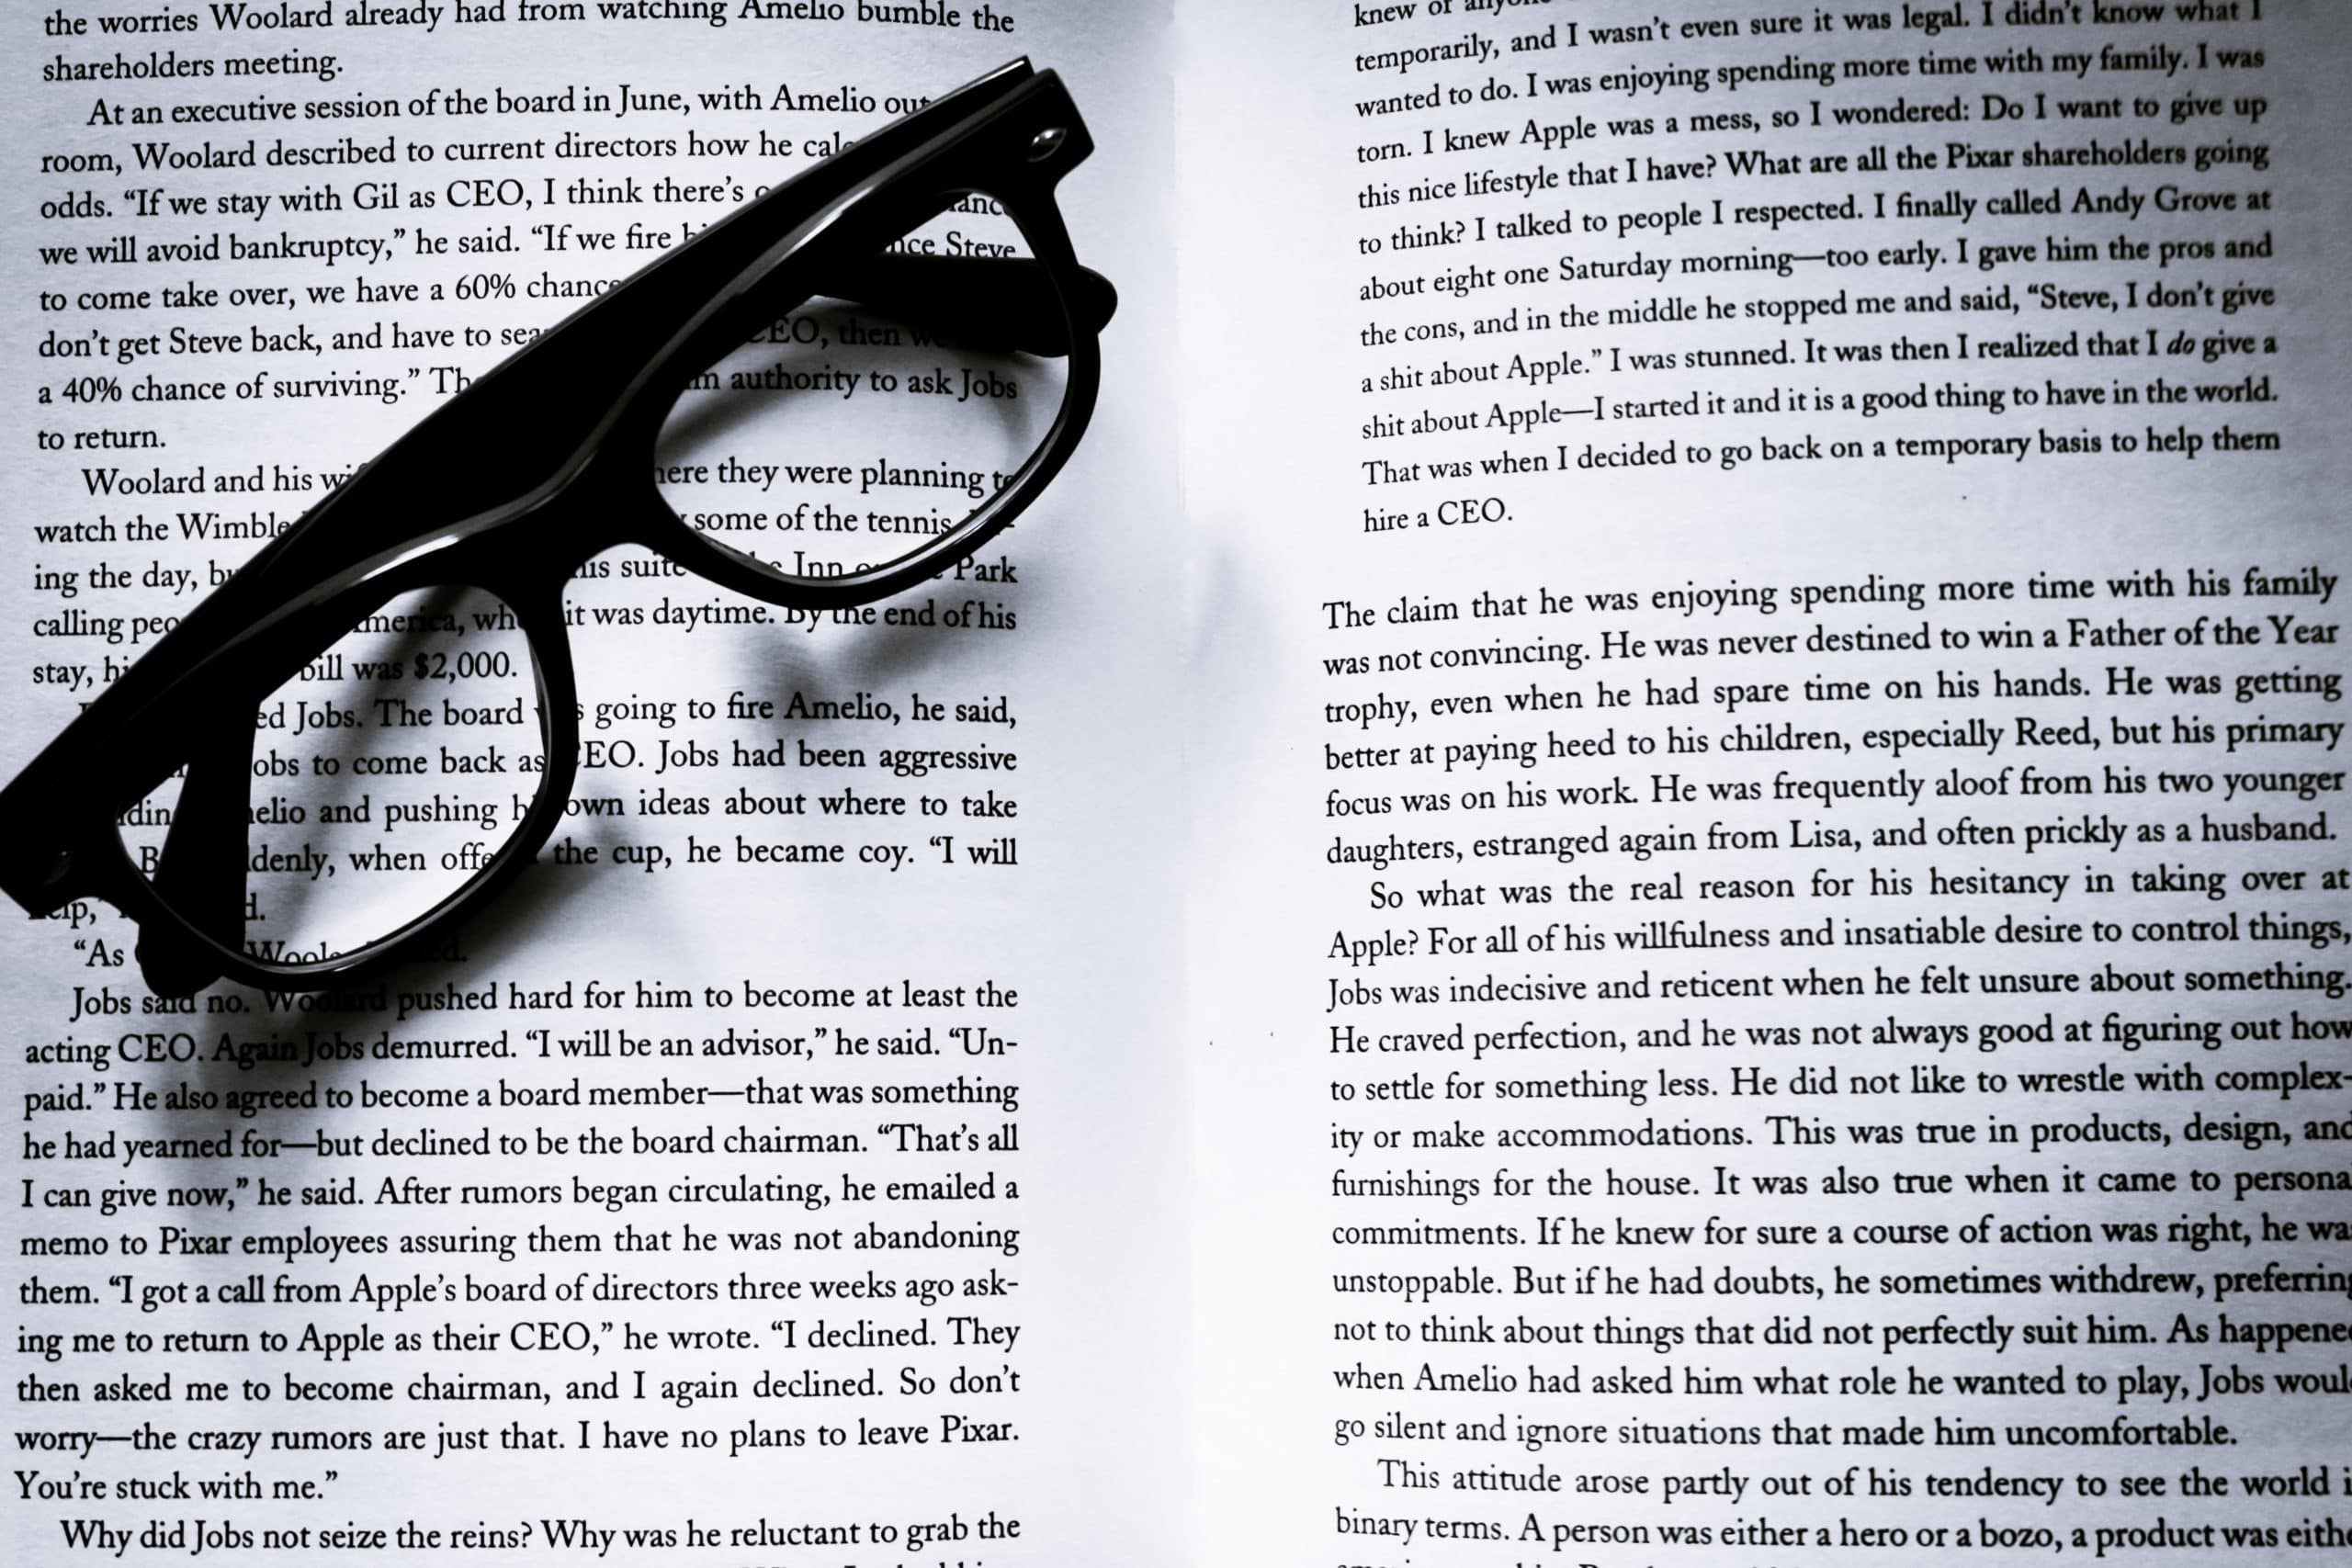 Text in an open book, with glasses on top